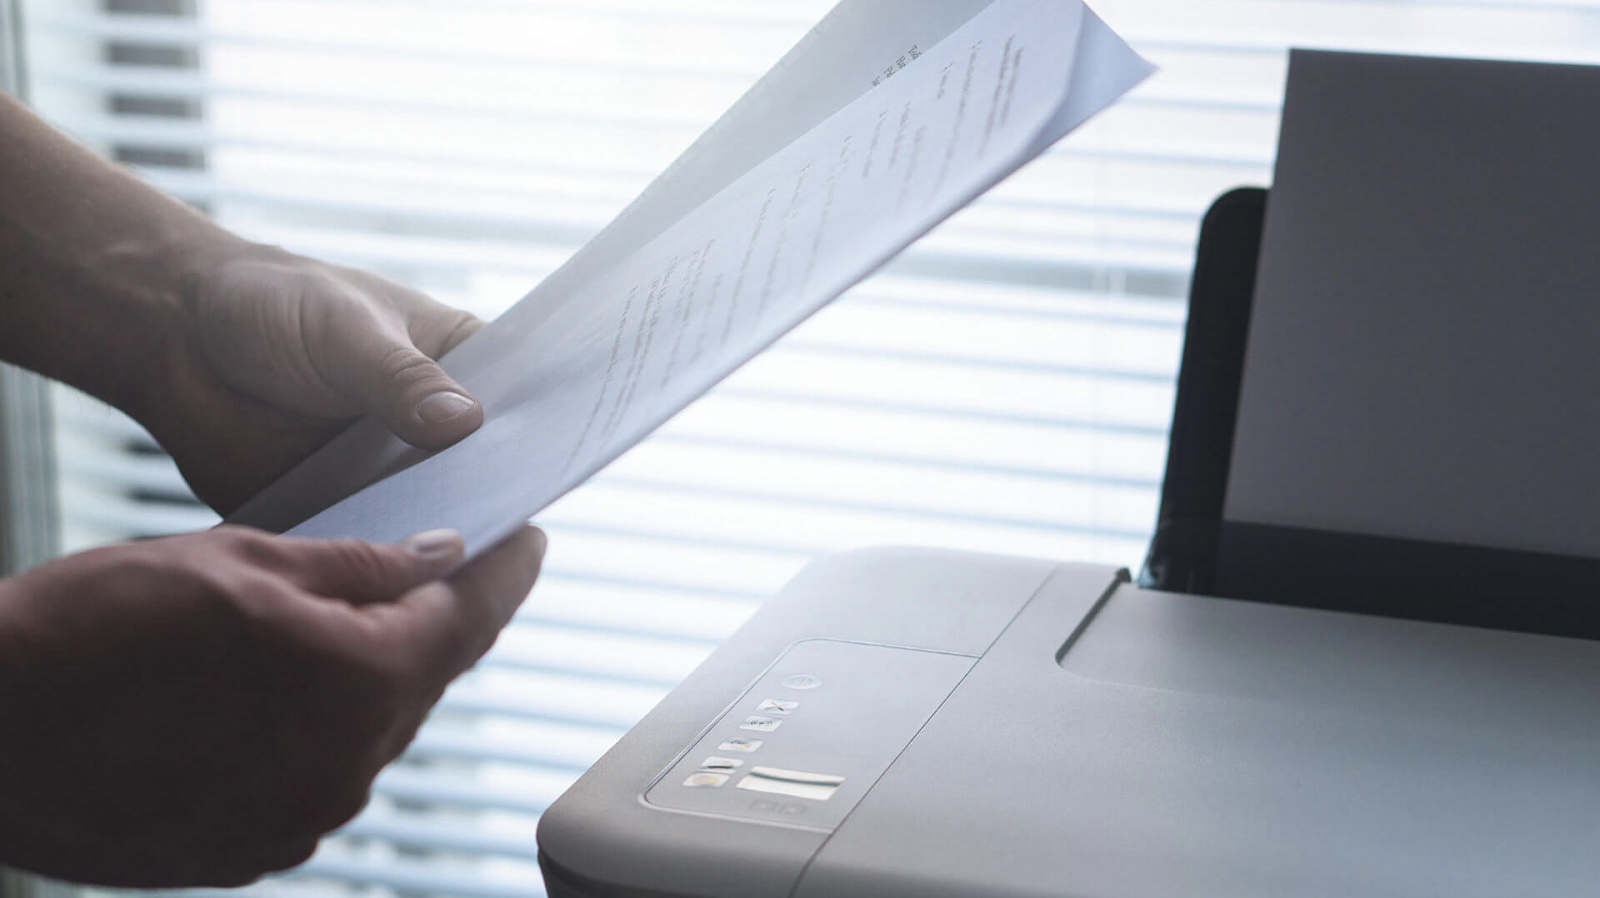 Hands holding documents near the printer and a large window